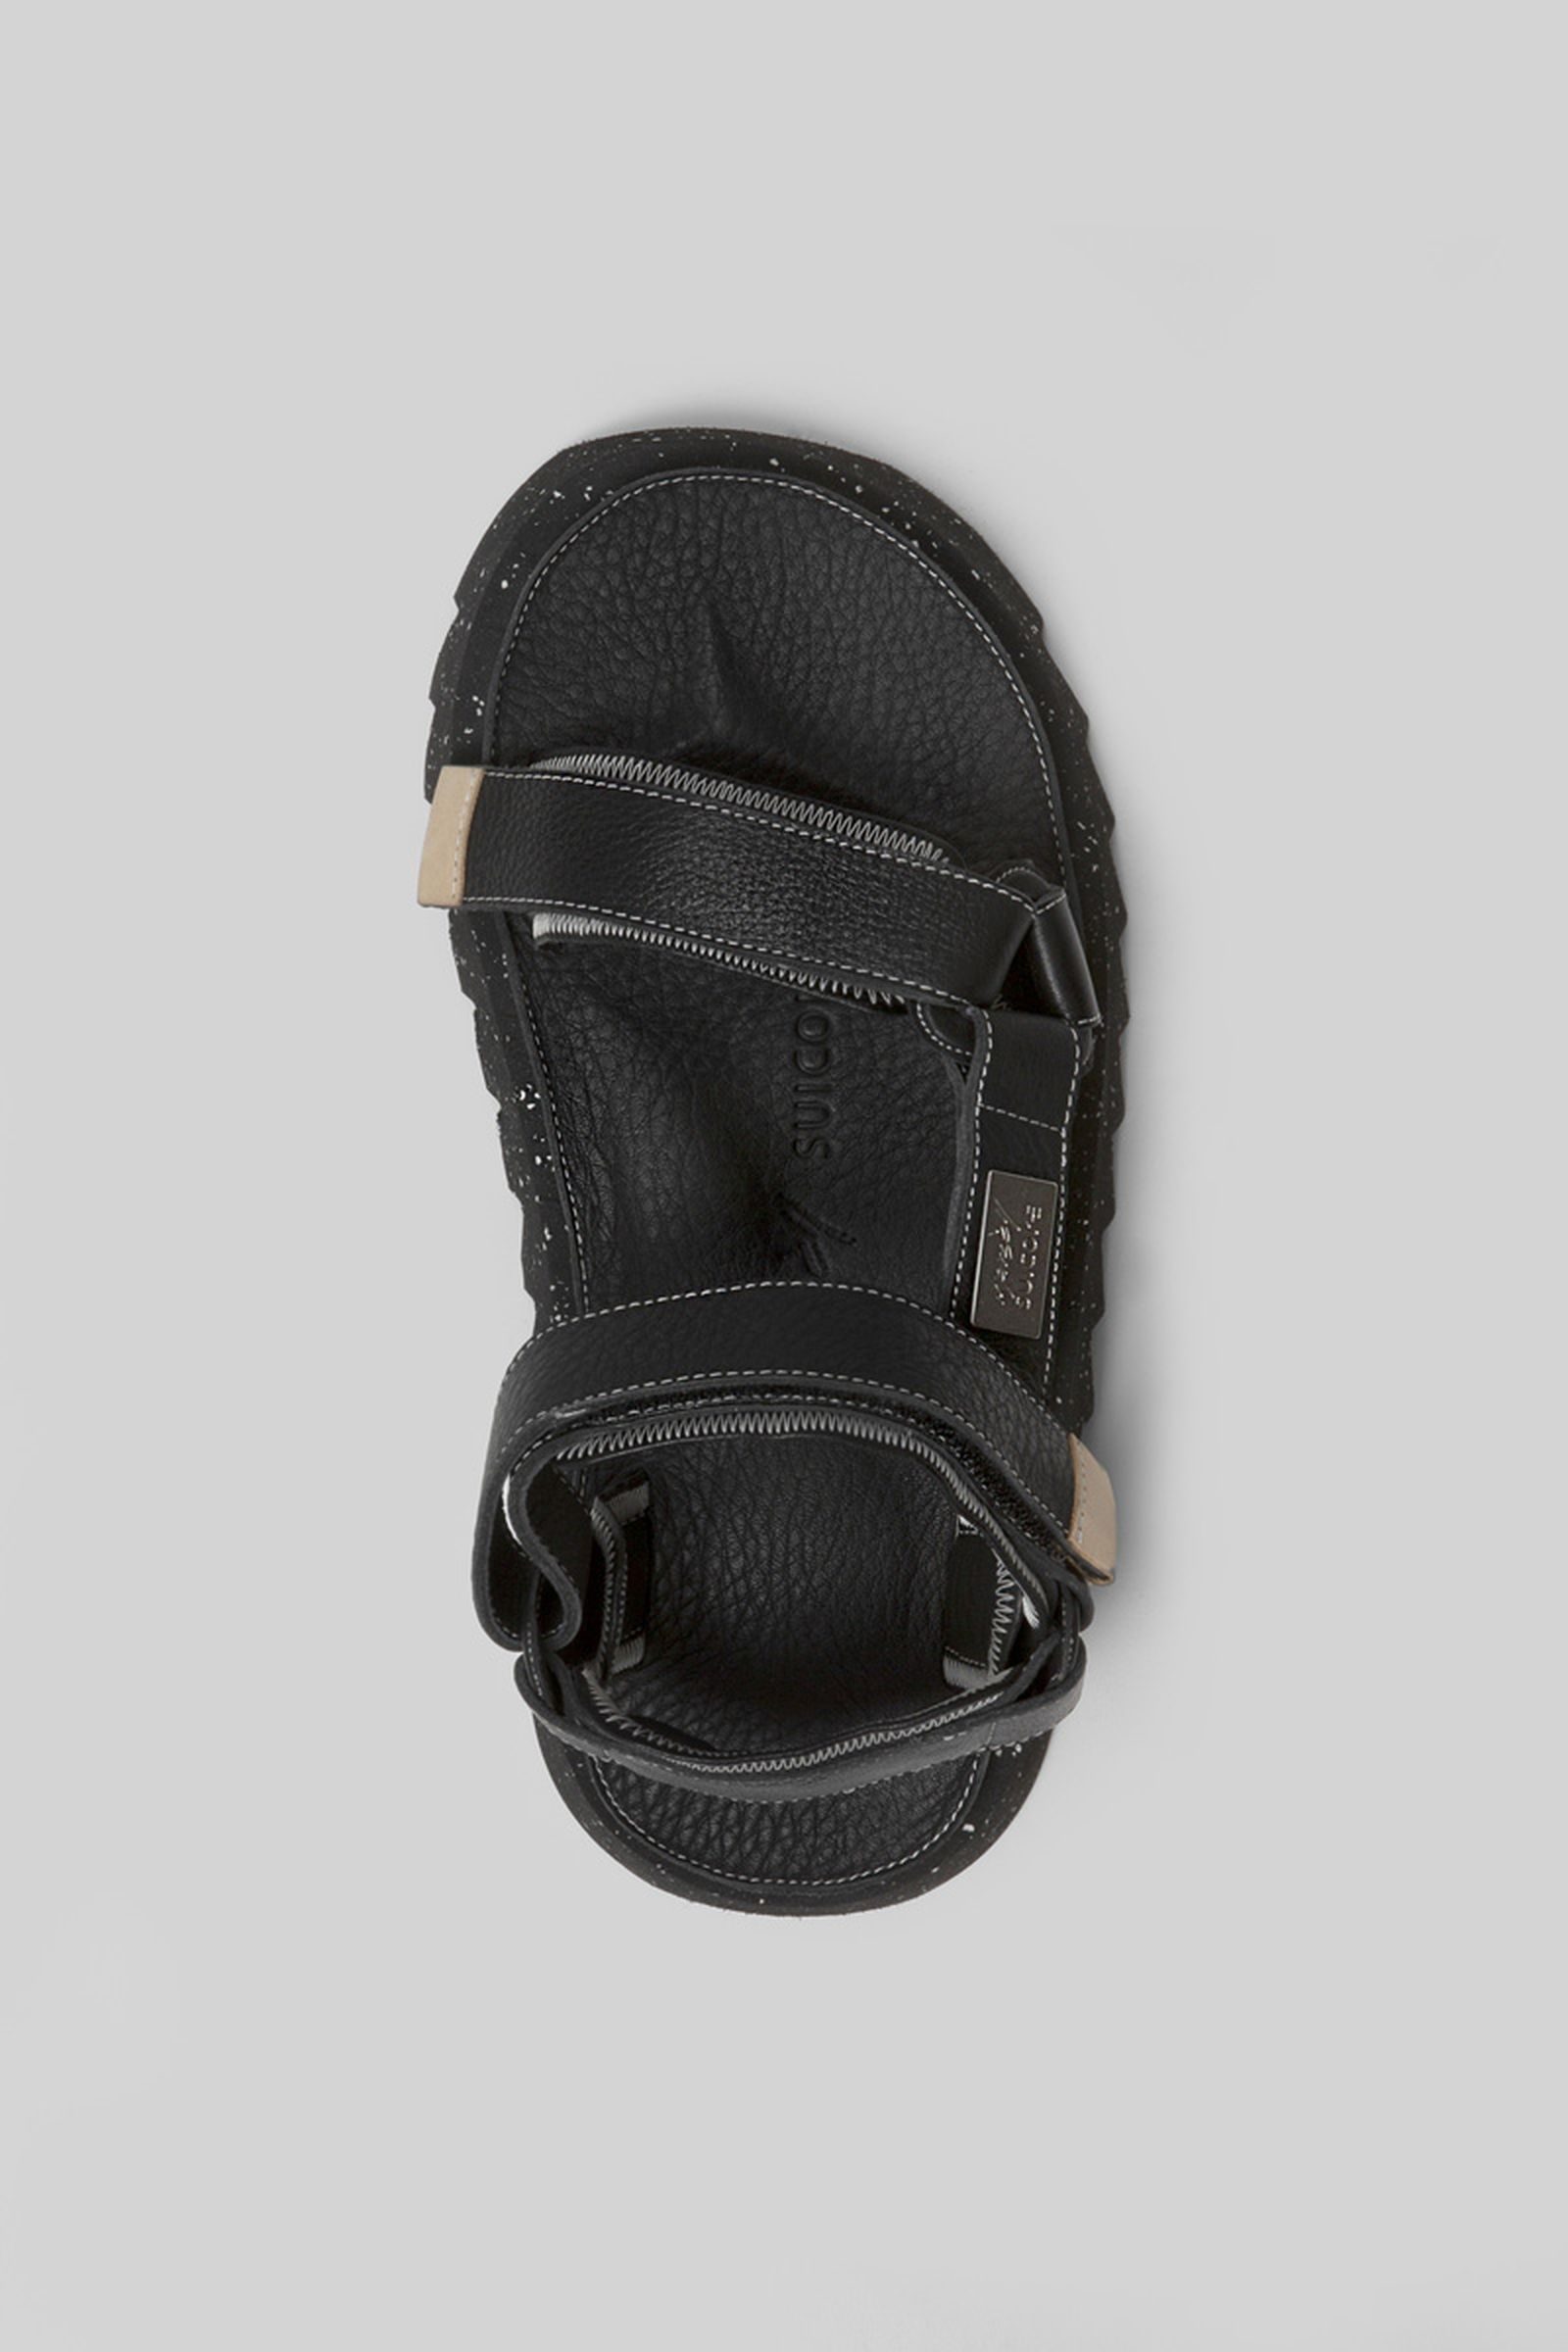 marsell-suicoke-ss21-collection-release-date-price-12